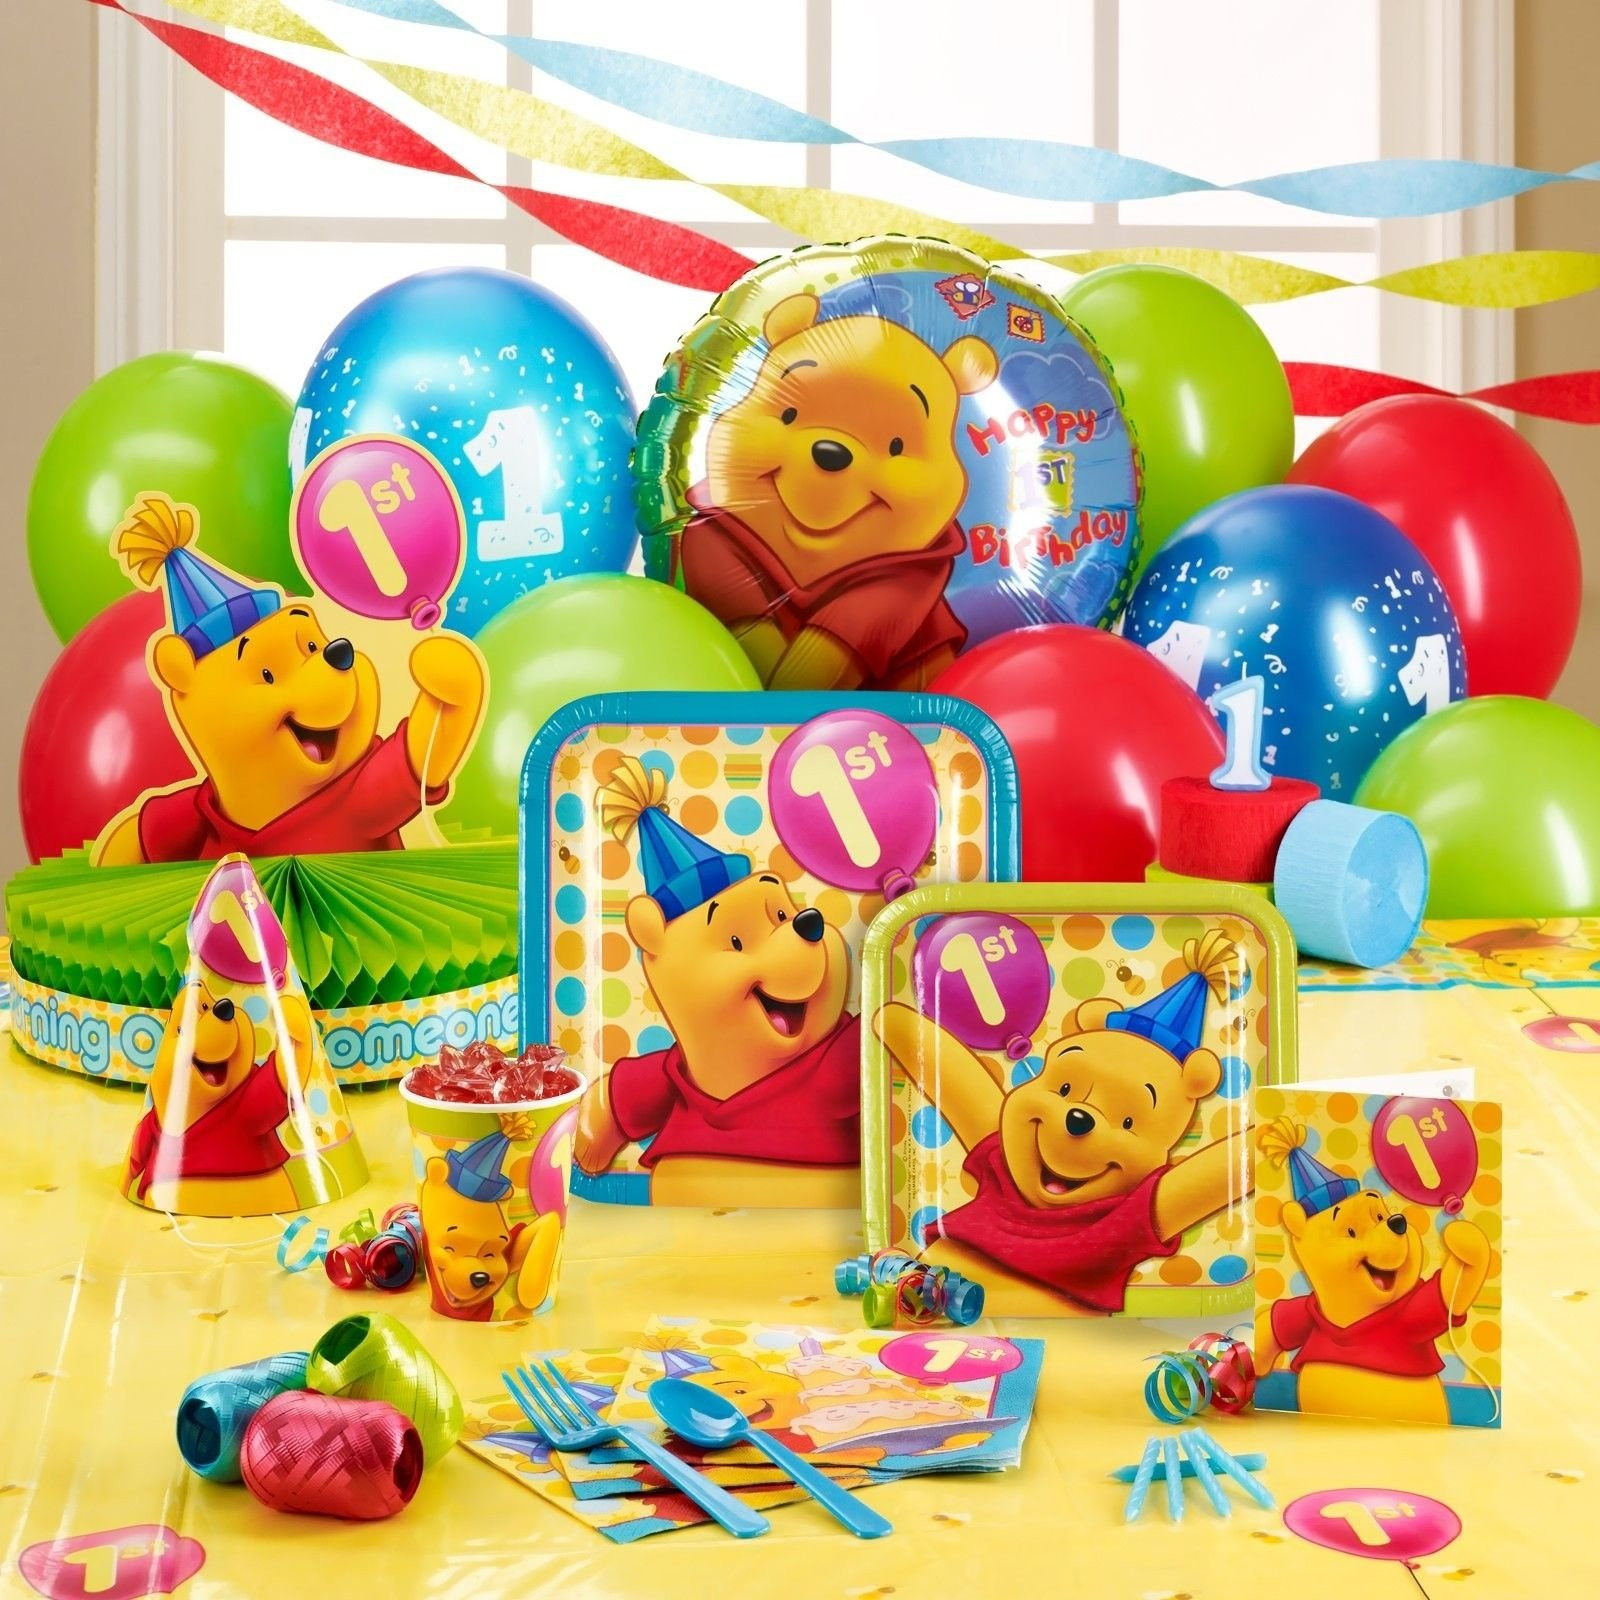 Best ideas about Winnie The Pooh Birthday Decorations . Save or Pin 1st Birthday Winnie The Pooh Theme lulalisa Now.